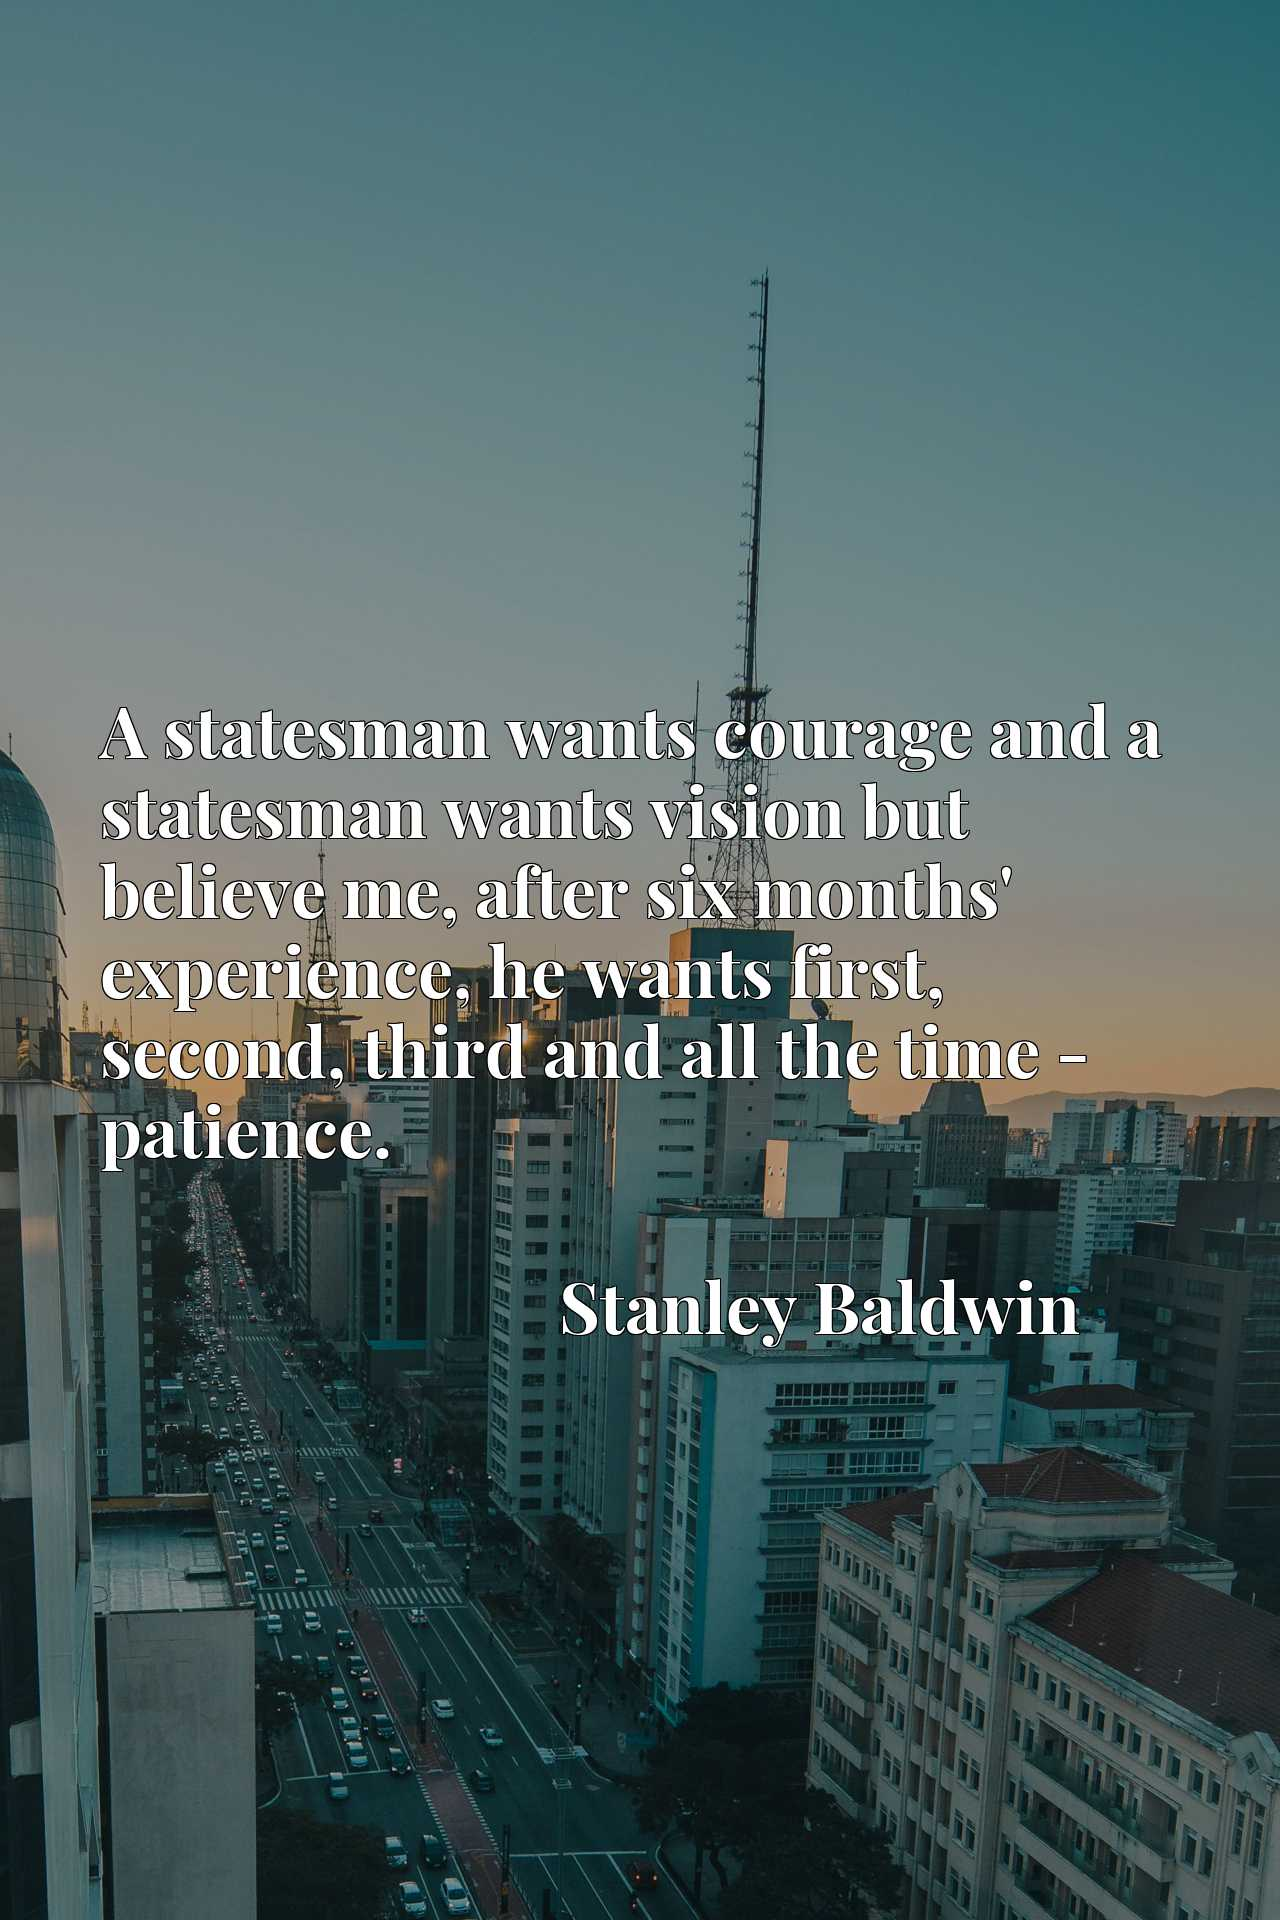 A statesman wants courage and a statesman wants vision but believe me, after six months' experience, he wants first, second, third and all the time - patience.